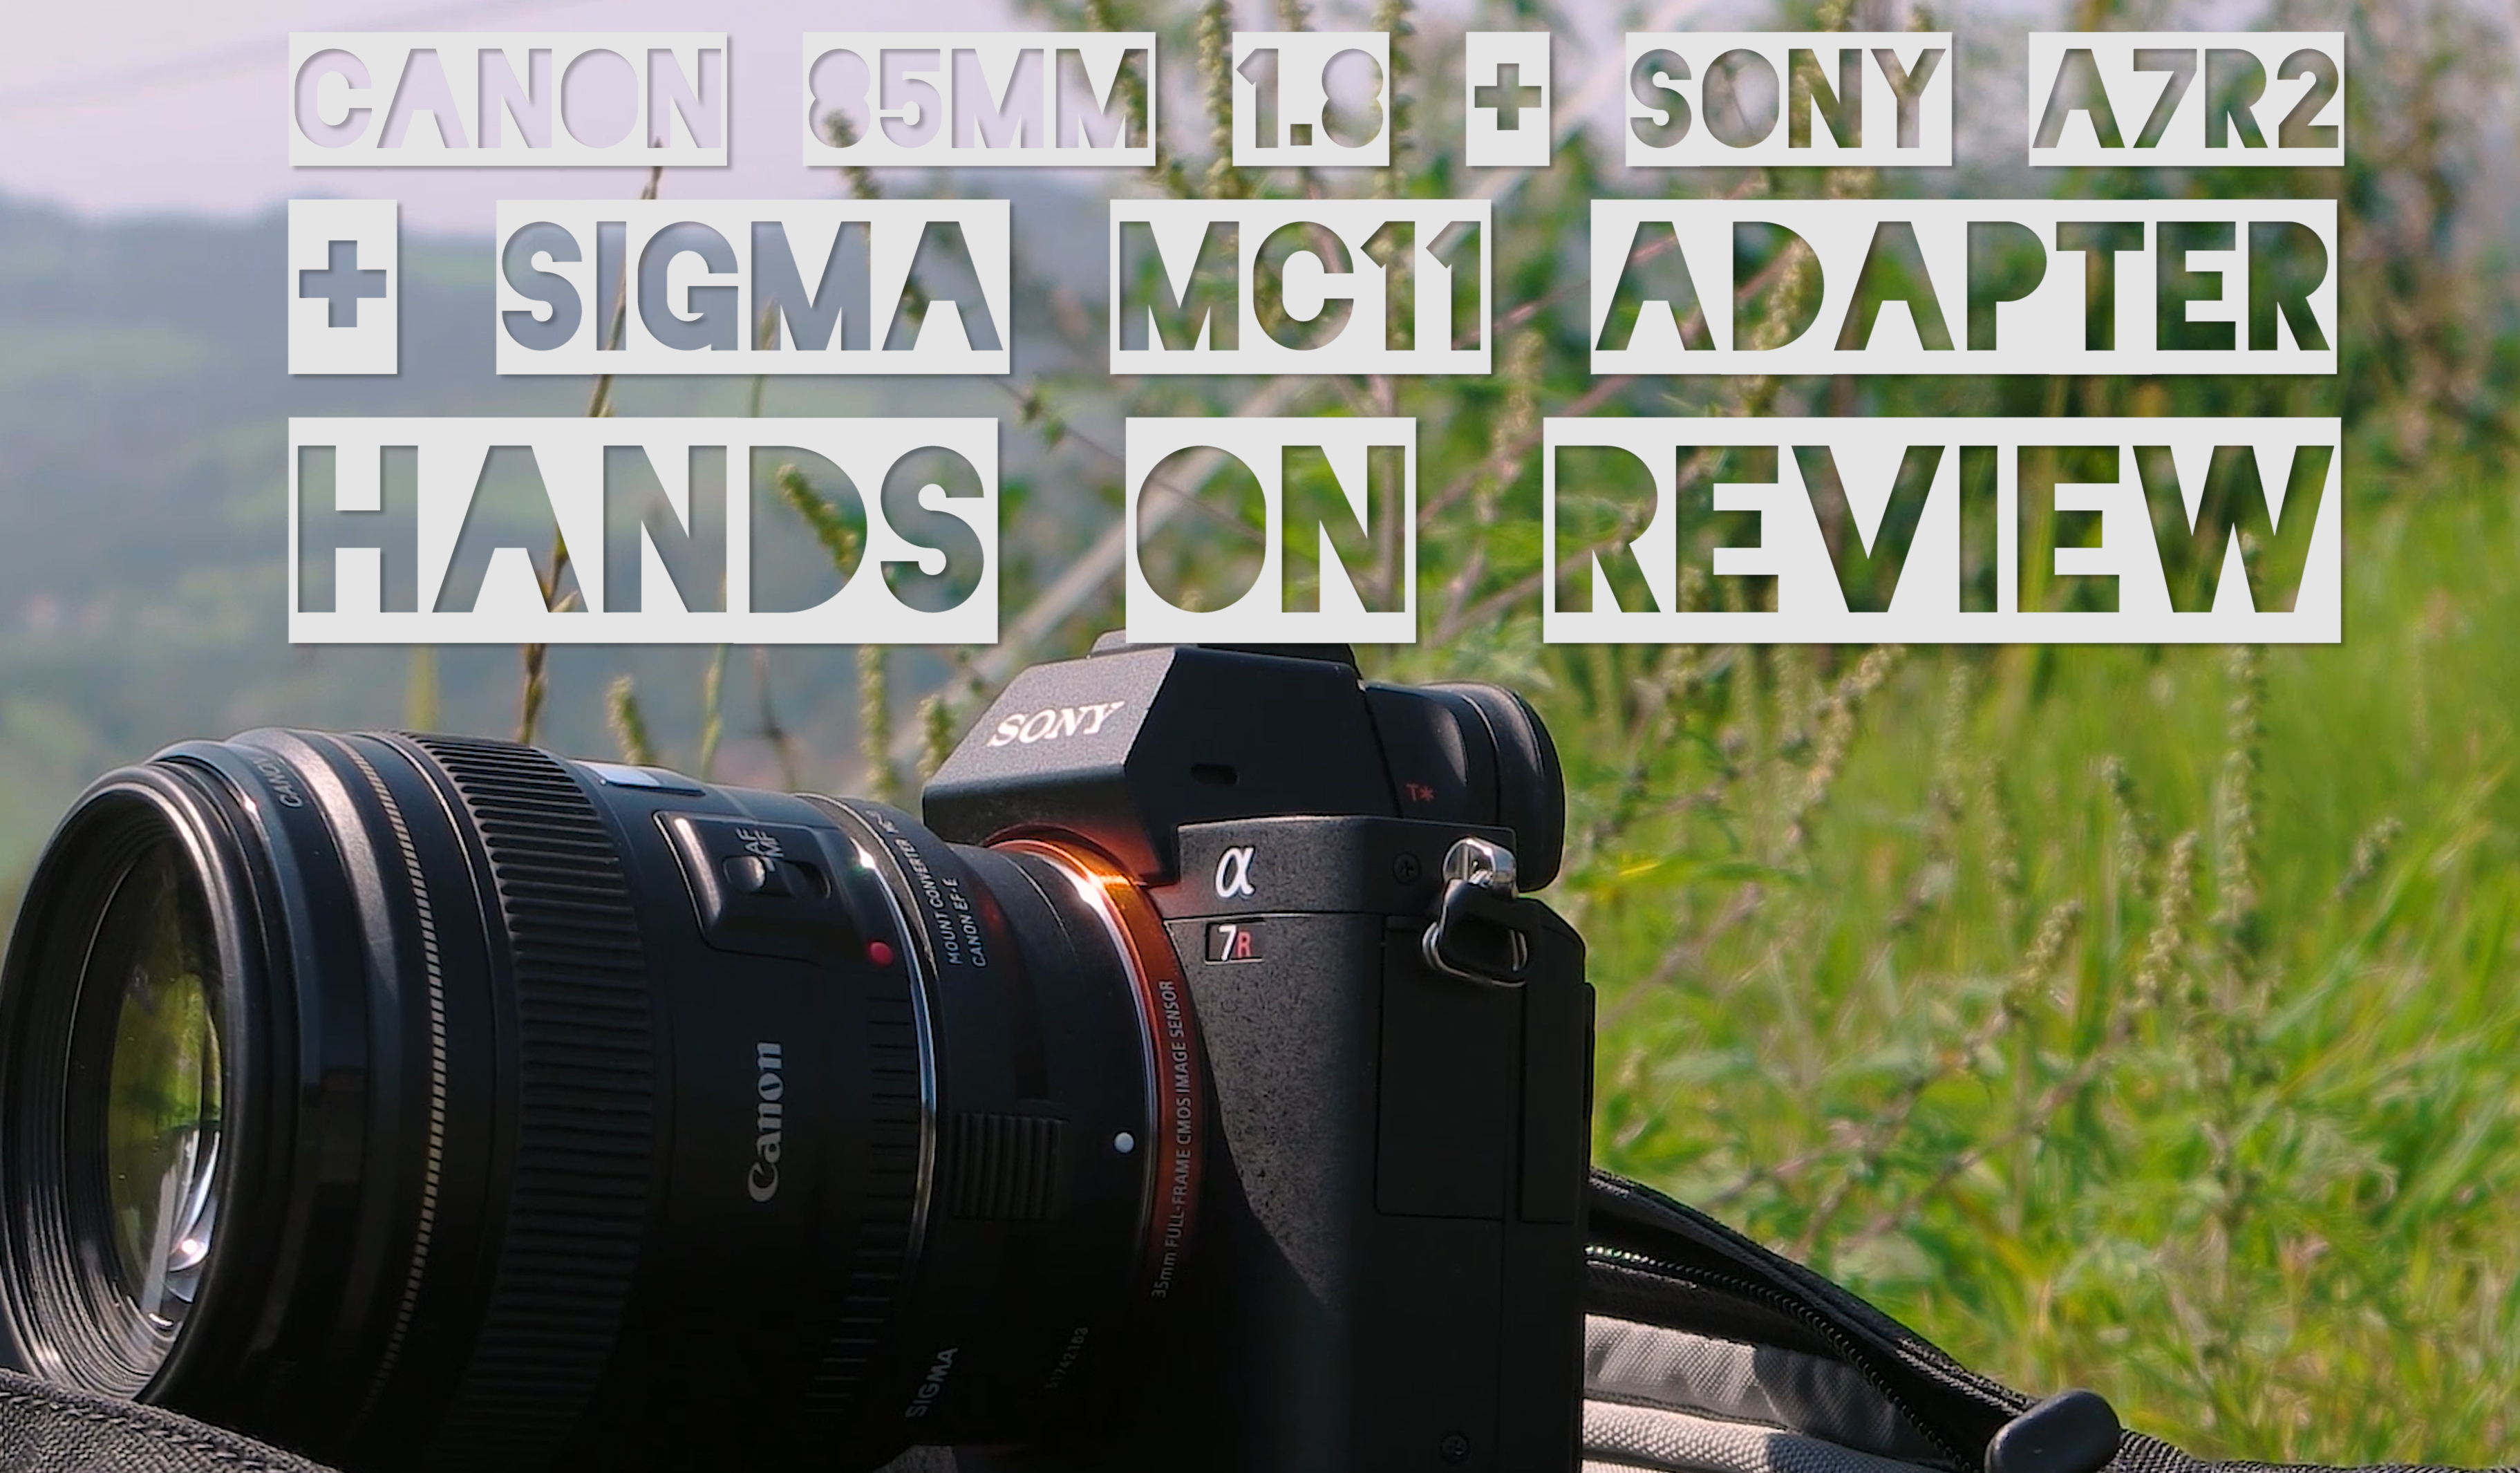 Canon 85mm 1.8 + Sigma MC11 Hands On Review